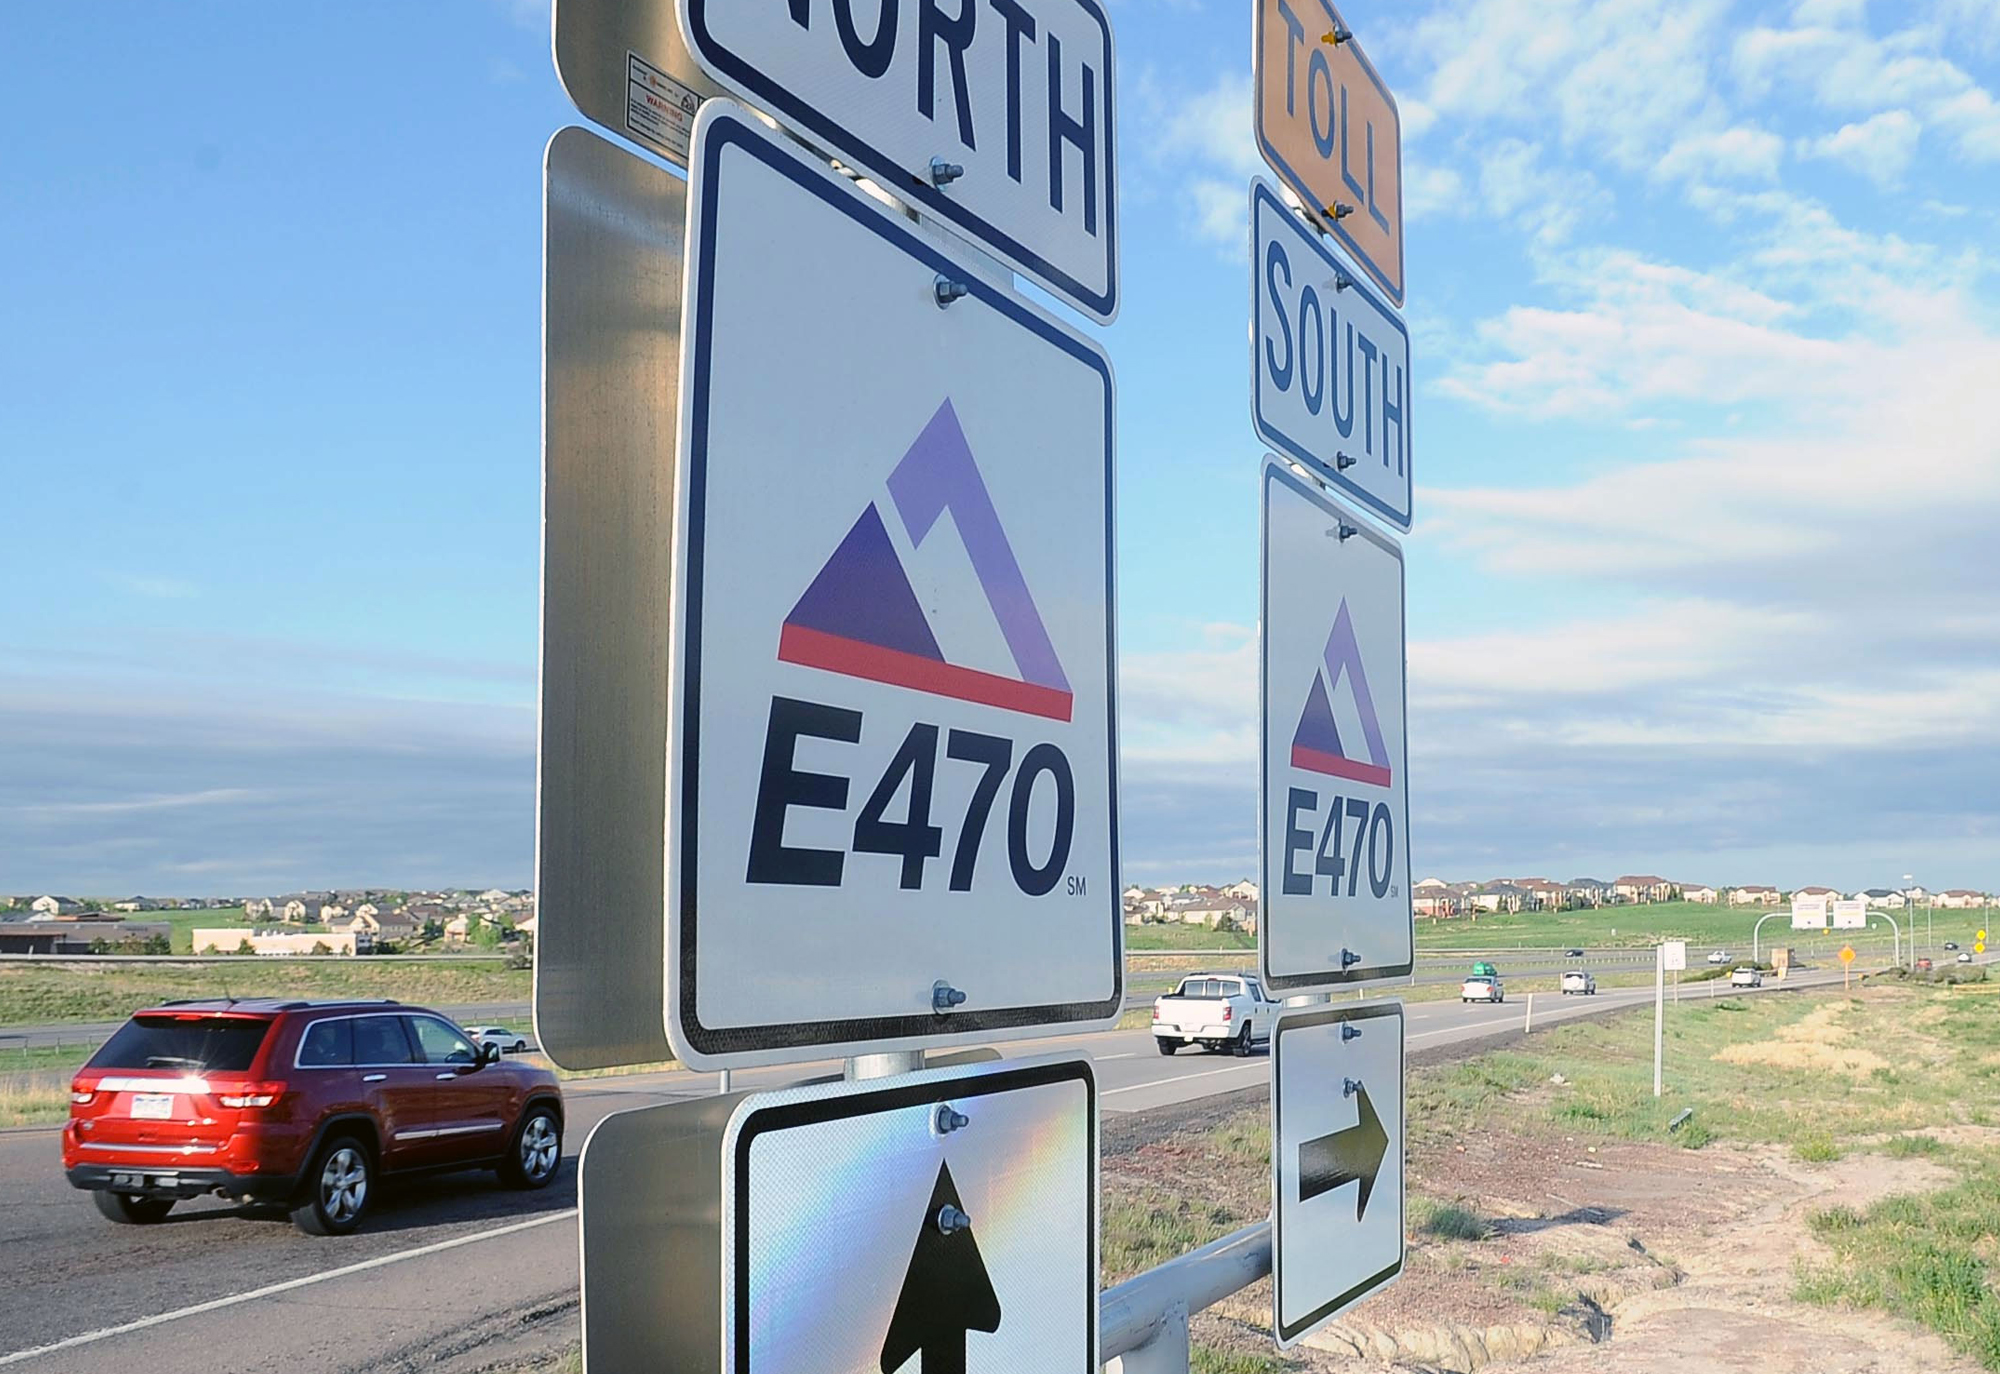 Rekor Systems' NUMERUS™ Selected By E-470 Public Highway Authority To Provide Vehicle Recognition Solutions For Electronic Tolling